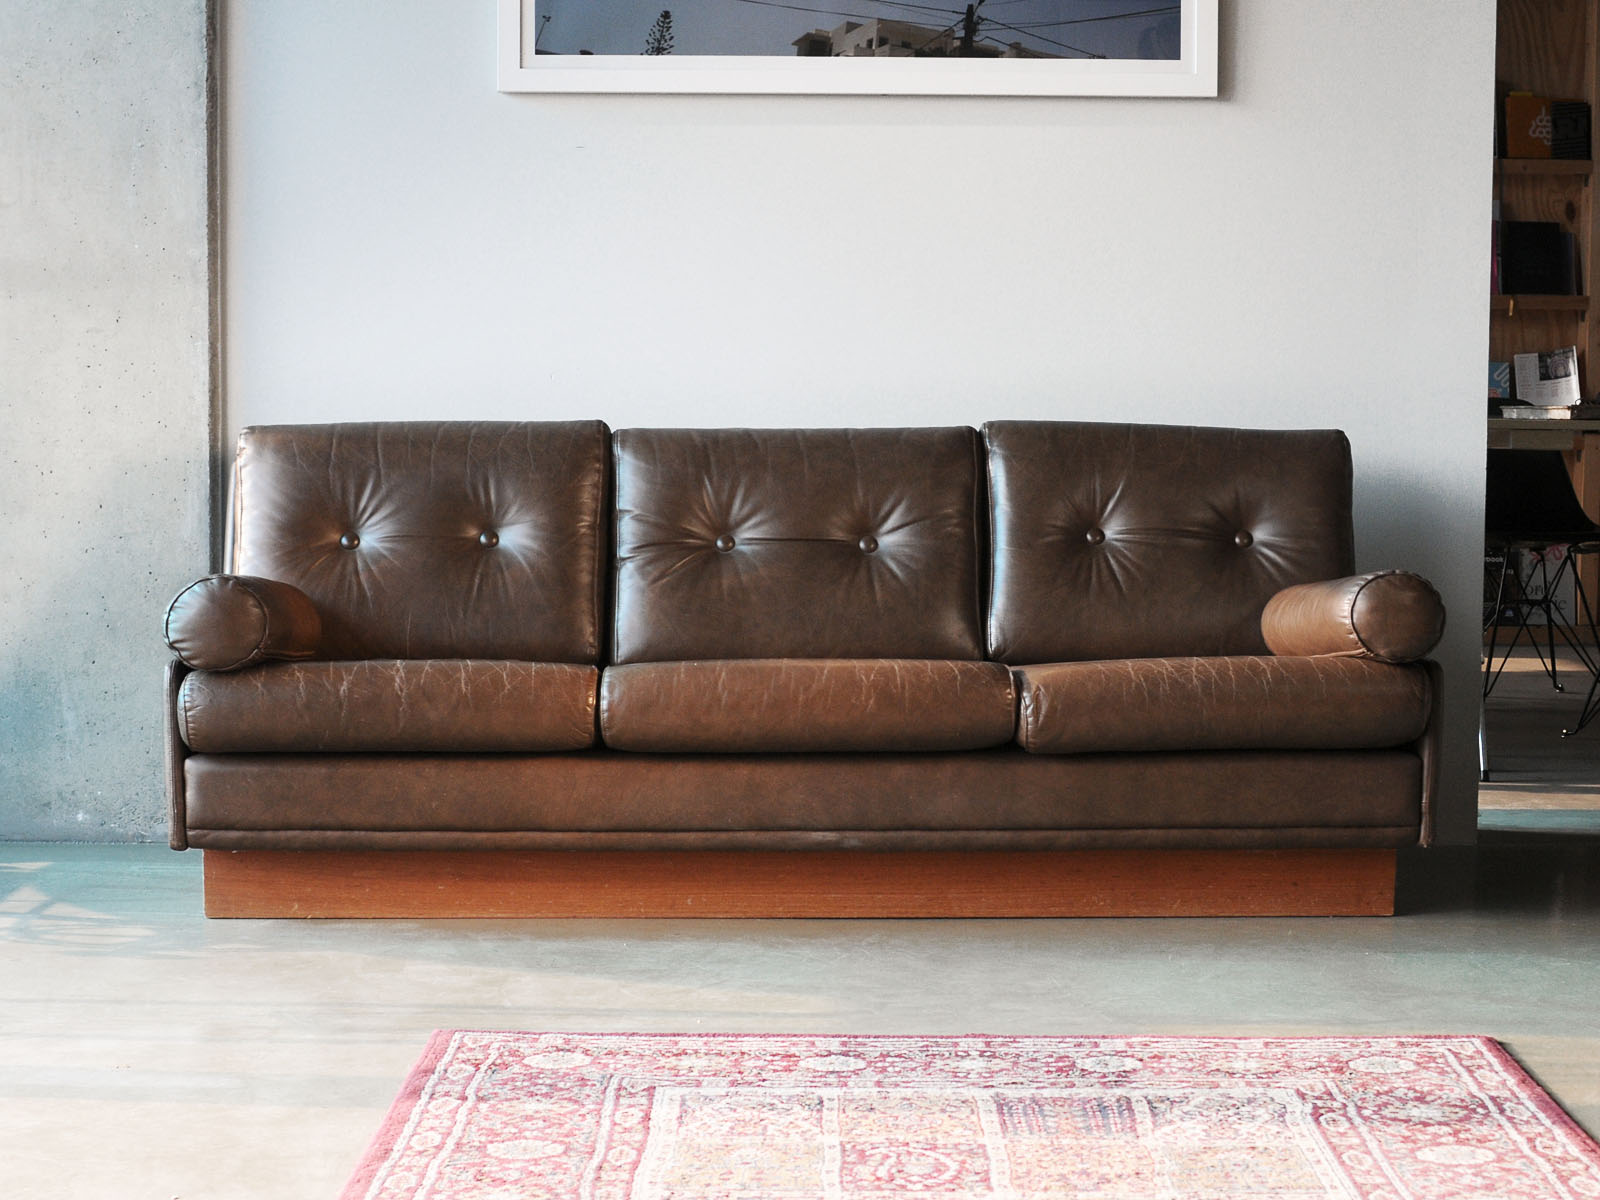 Cool Couch Cool Vintage 70th Leather Couch E Linkedlifescom